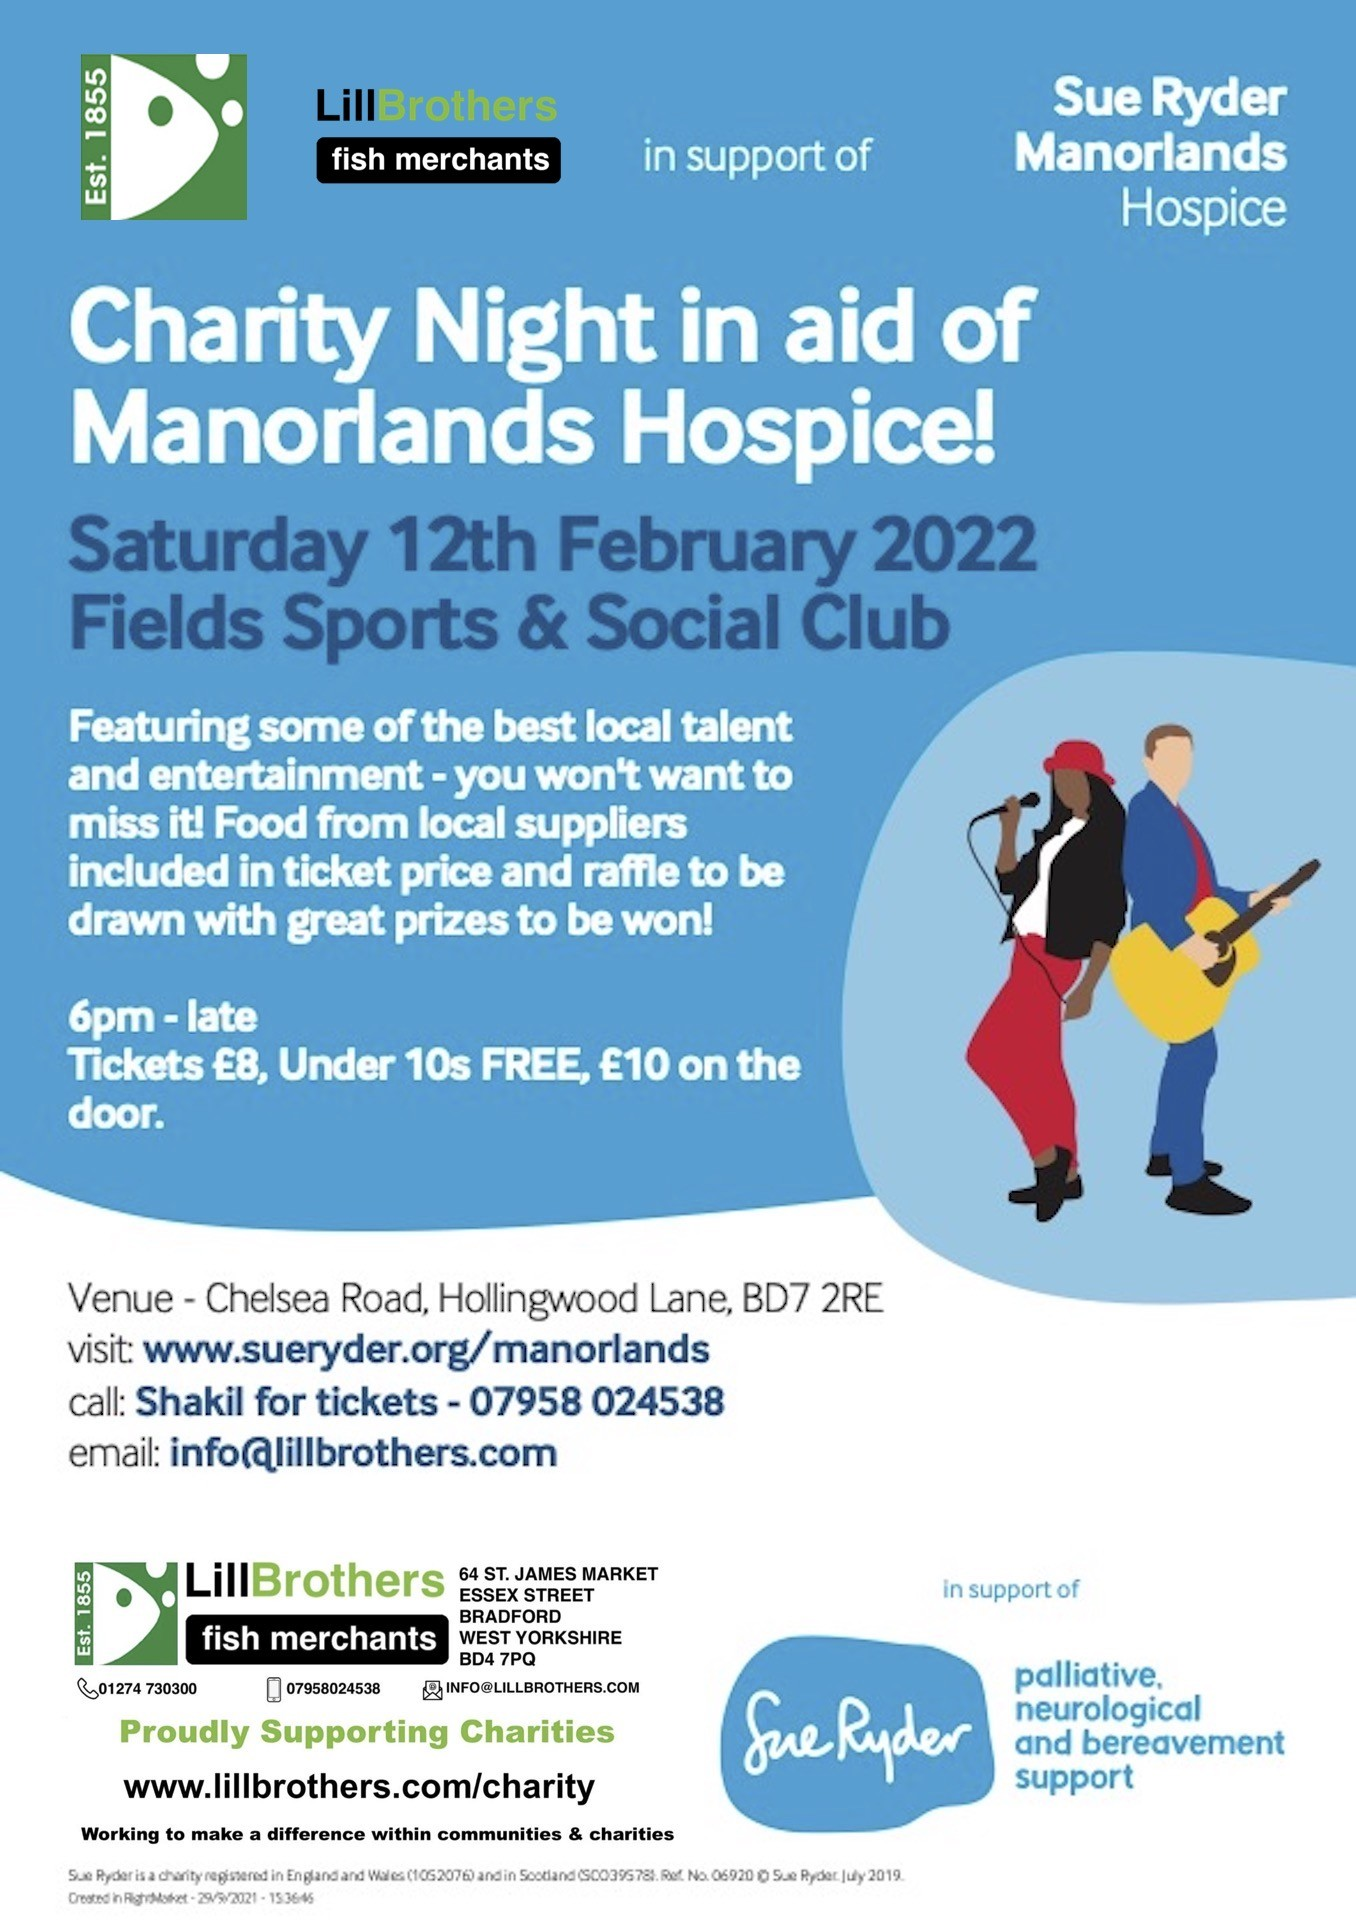 Charity Night 2022 in aid of Sue Ryder Manorlands Hospice